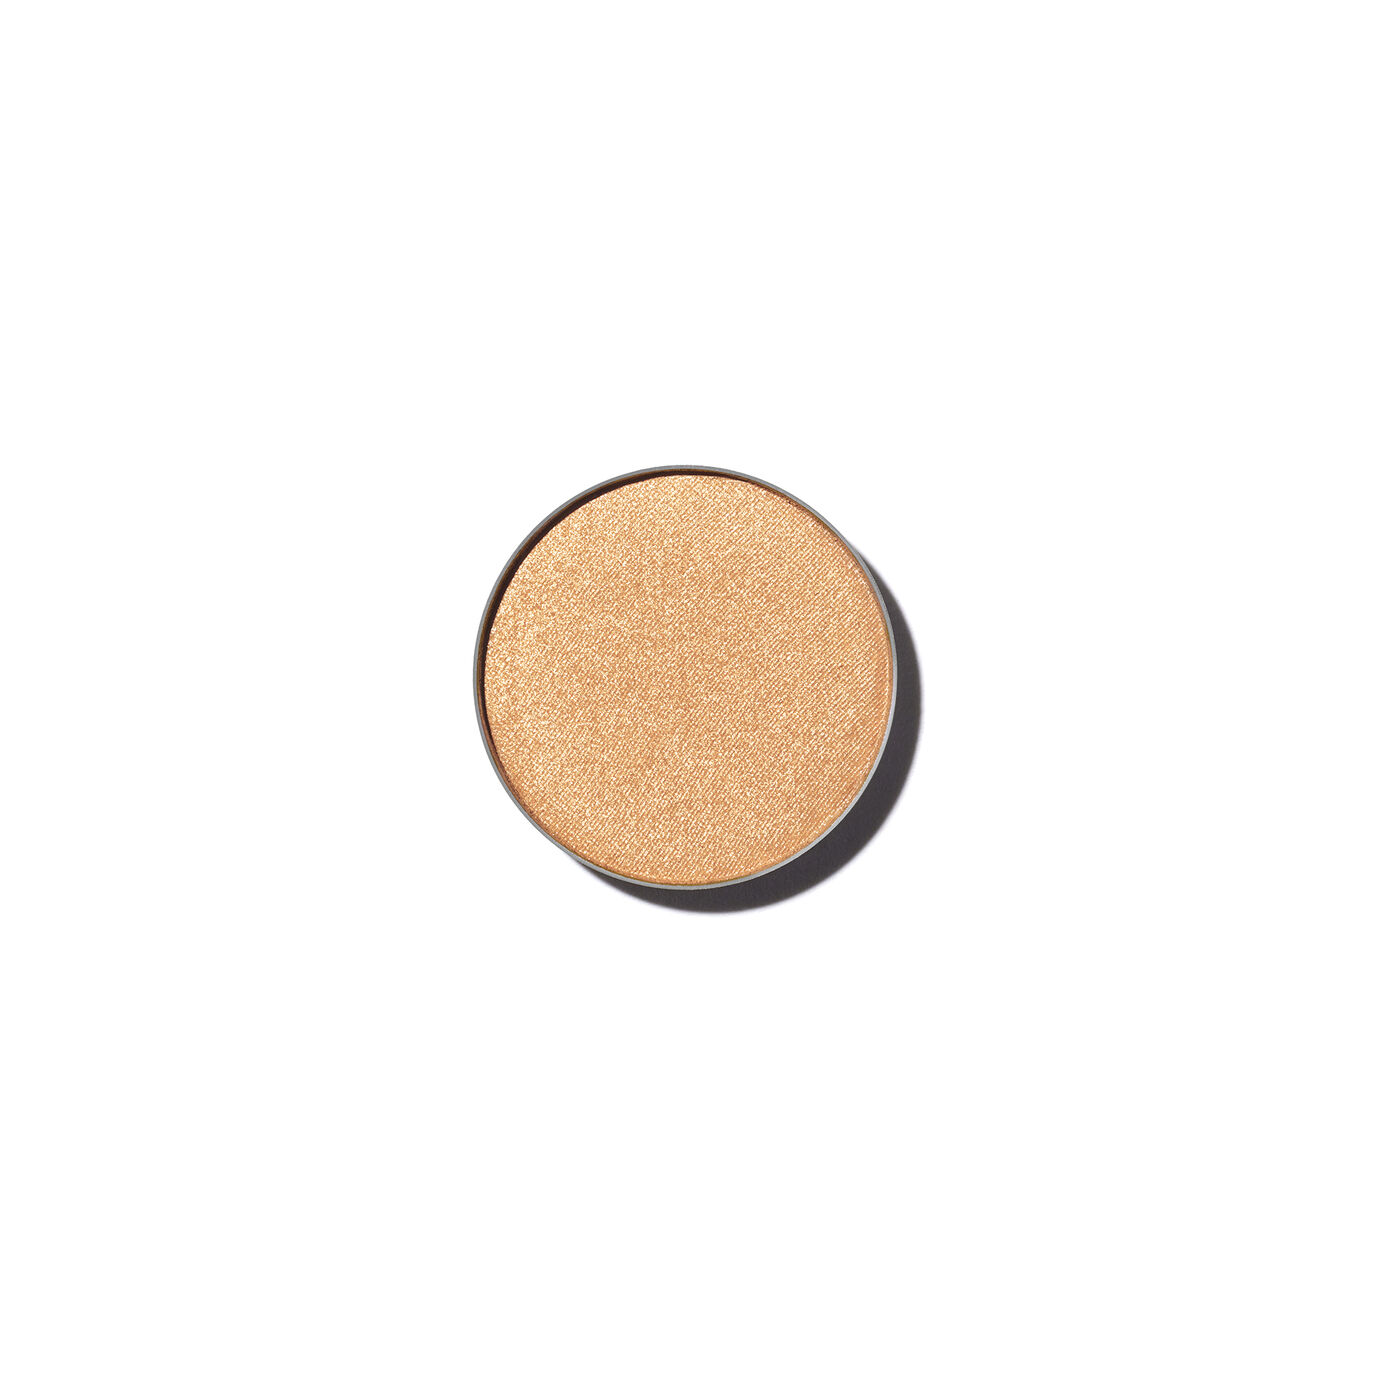 Eyeshadow Singles - Peach Sorbet